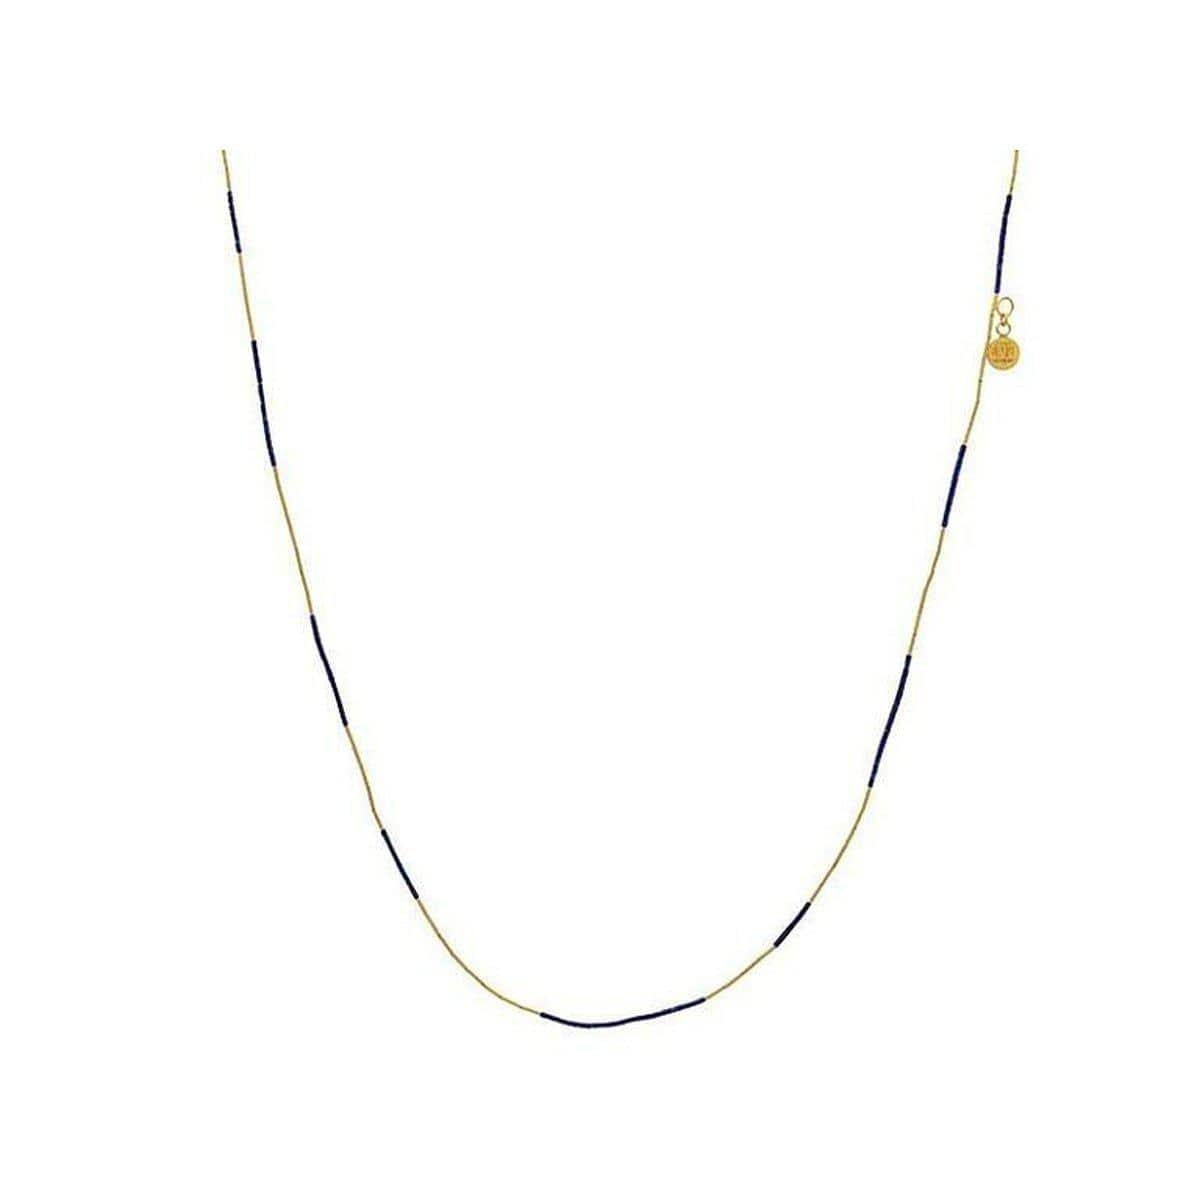 Delicate Hue 24K Gold Multi Stone Necklace - MN1-LATQ-16ST-PL-36-GURHAN-Renee Taylor Gallery